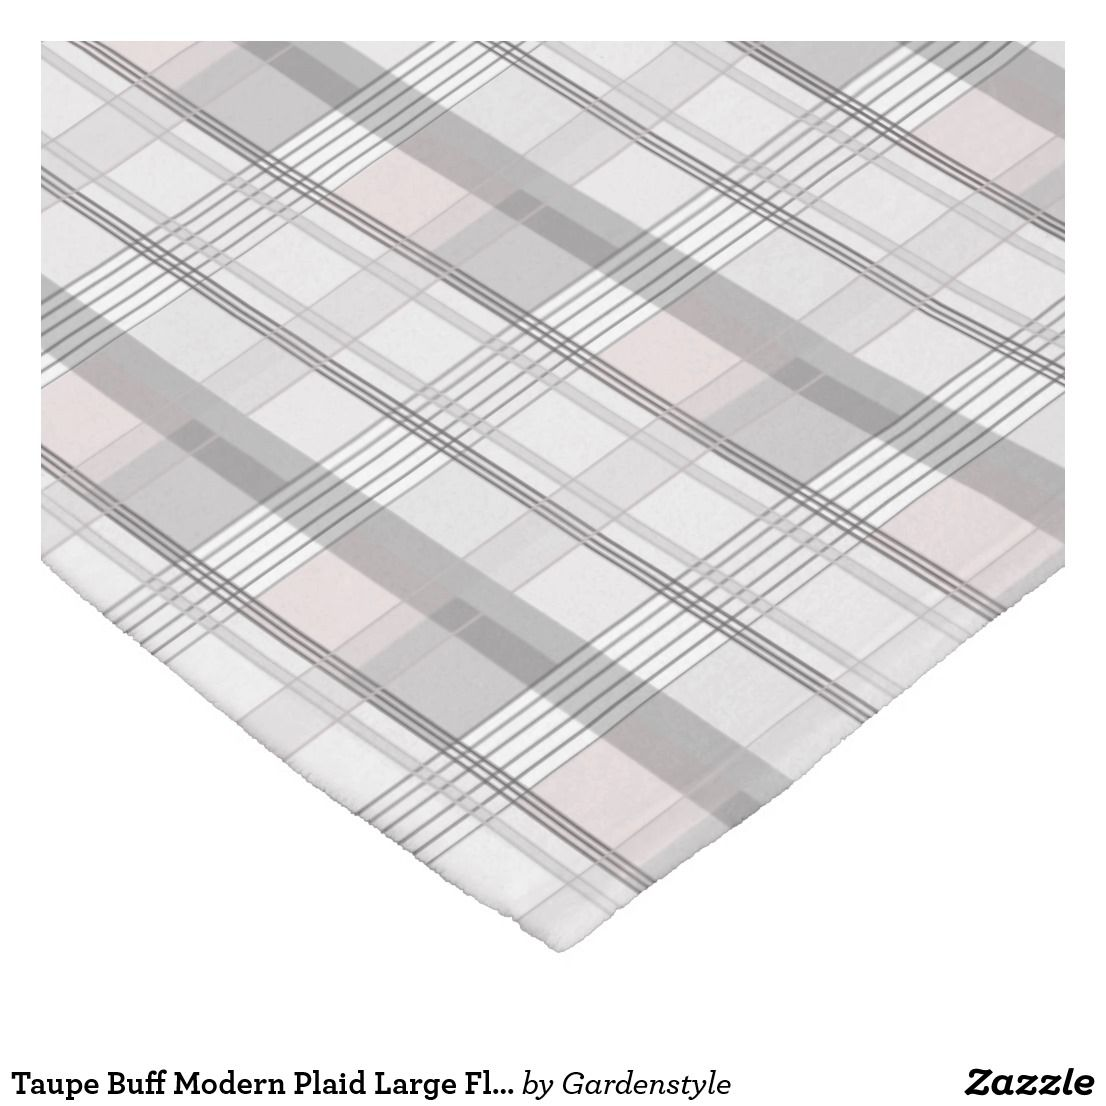 Plaid Taupe Taupe Buff Modern Plaid Large Fleece Blanket Zazzle In 2019